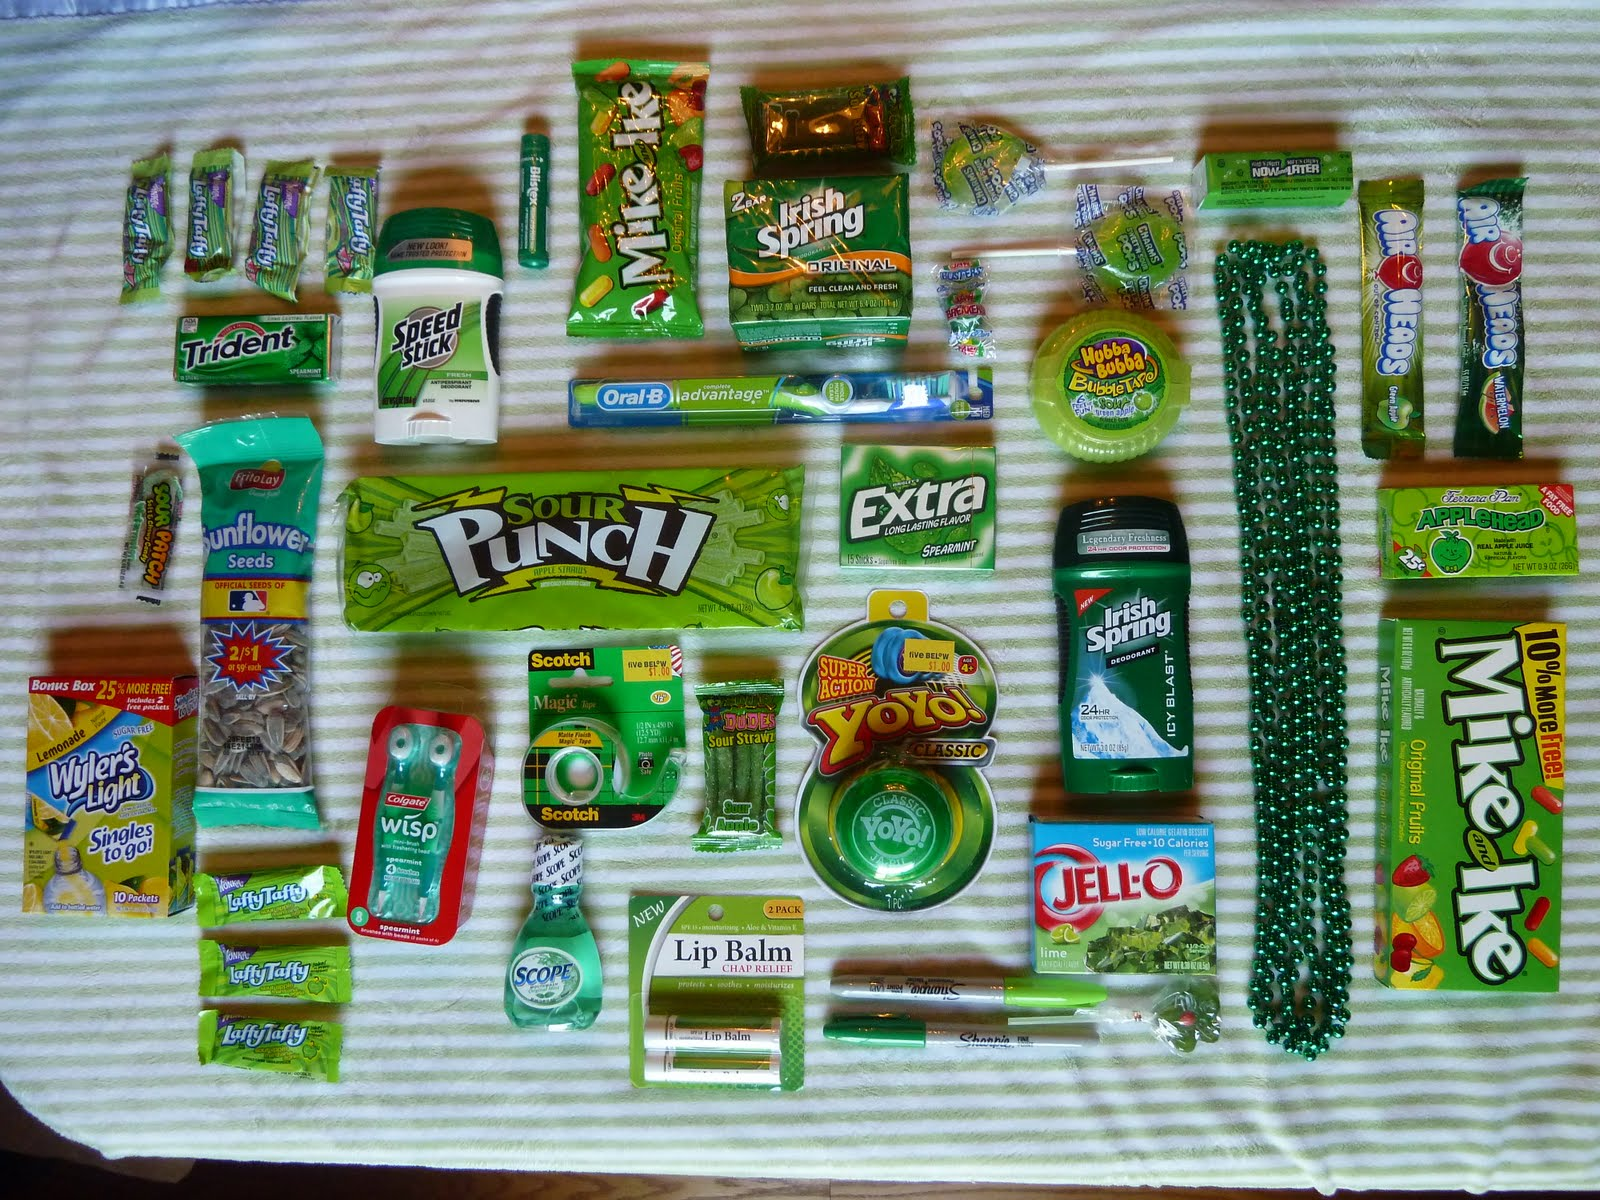 Sometimes creative missionary packages if youre looking for other missionary care package ideas check out my fun mail packages link for past ones negle Gallery